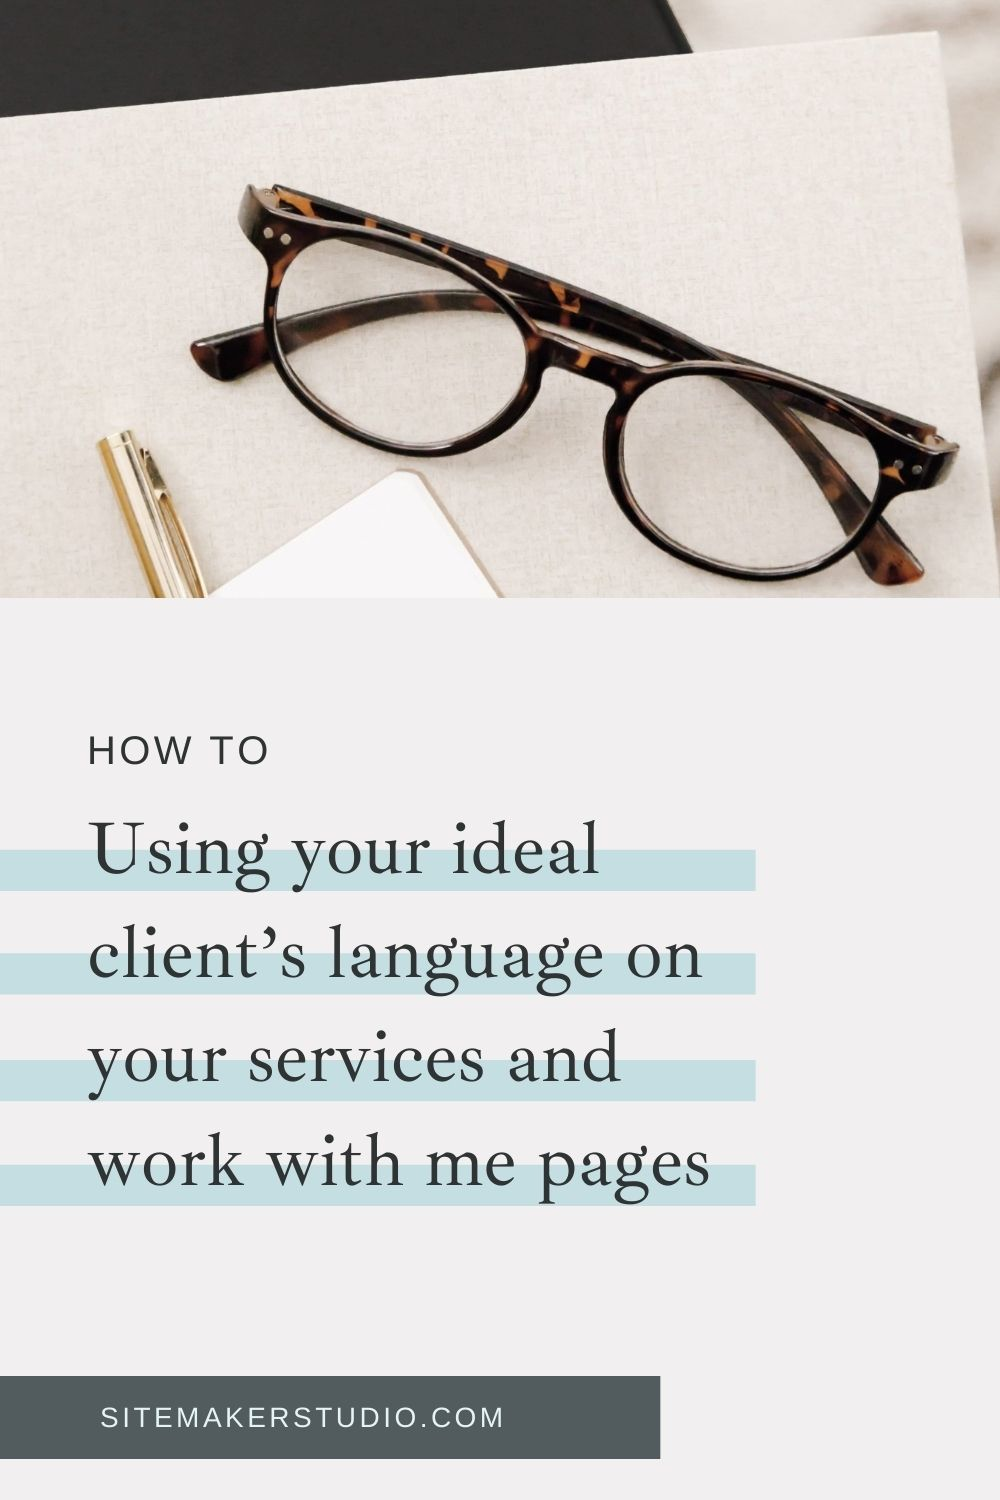 Using Your Ideal Client's Language On Your Services and Work with Me Pages||5 things your website must have download the free pdf